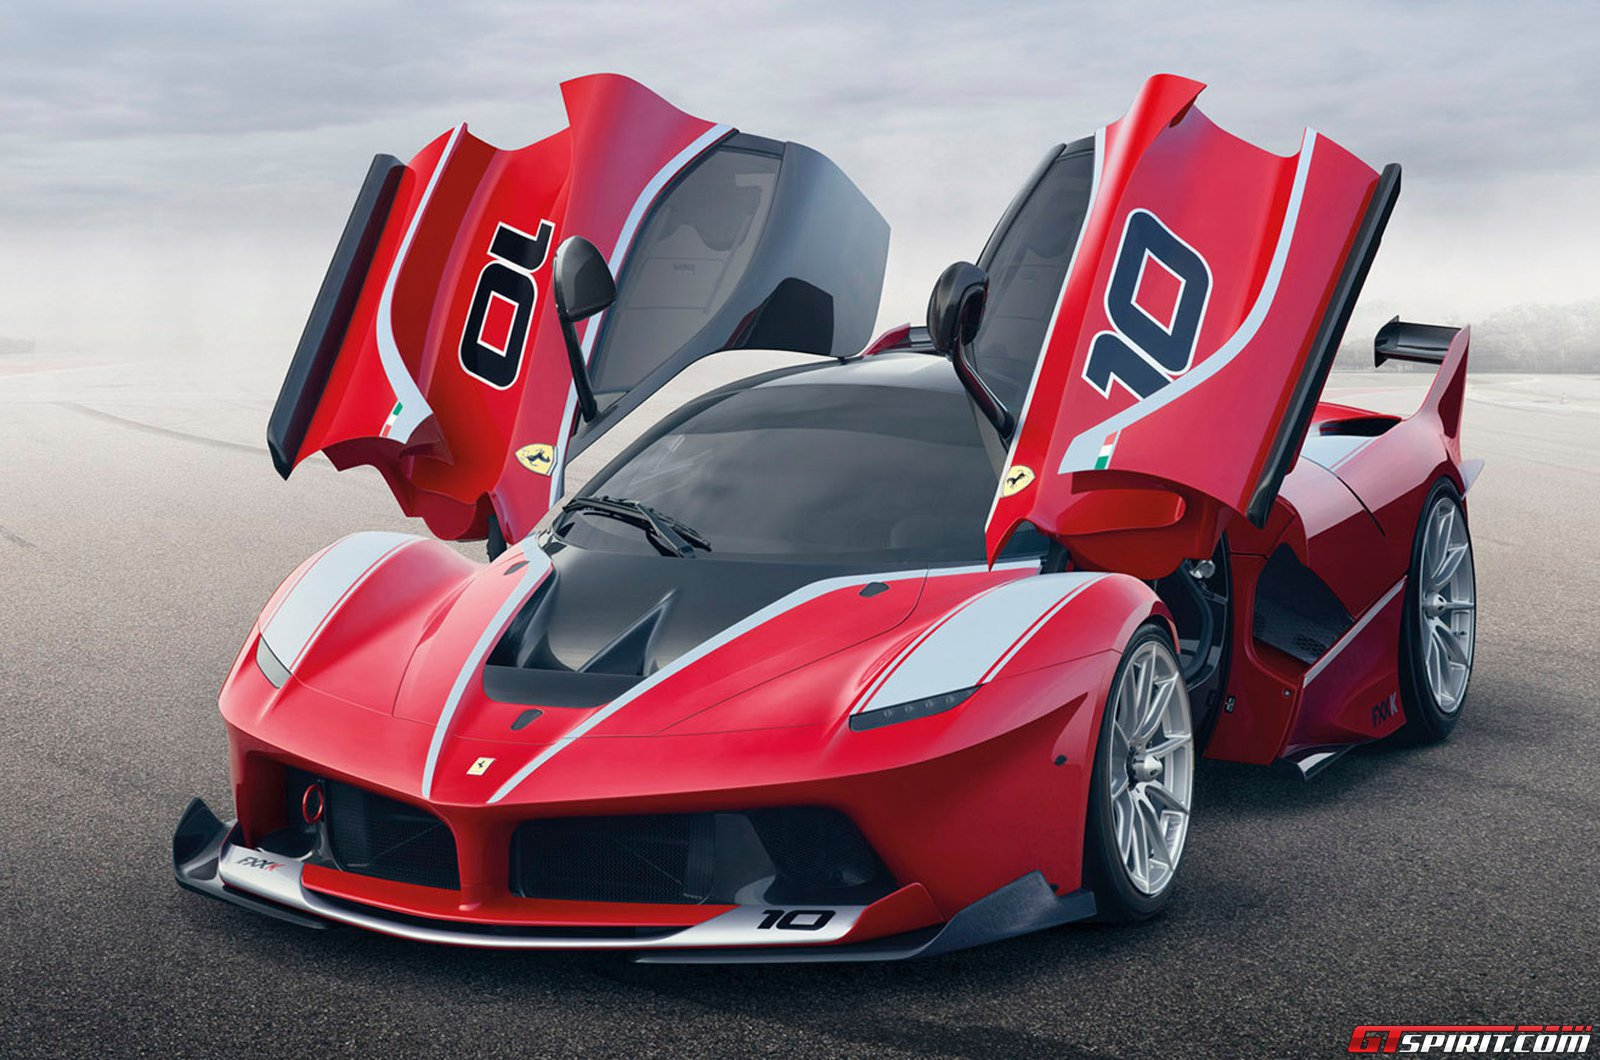 Compared To The Ferrari FXX Which The New LaFerrari FXX K Essentially  Succeeds, The New Car Is 2 Seconds Faster And 1 Second Faster Than The  Ferrari 599XX.